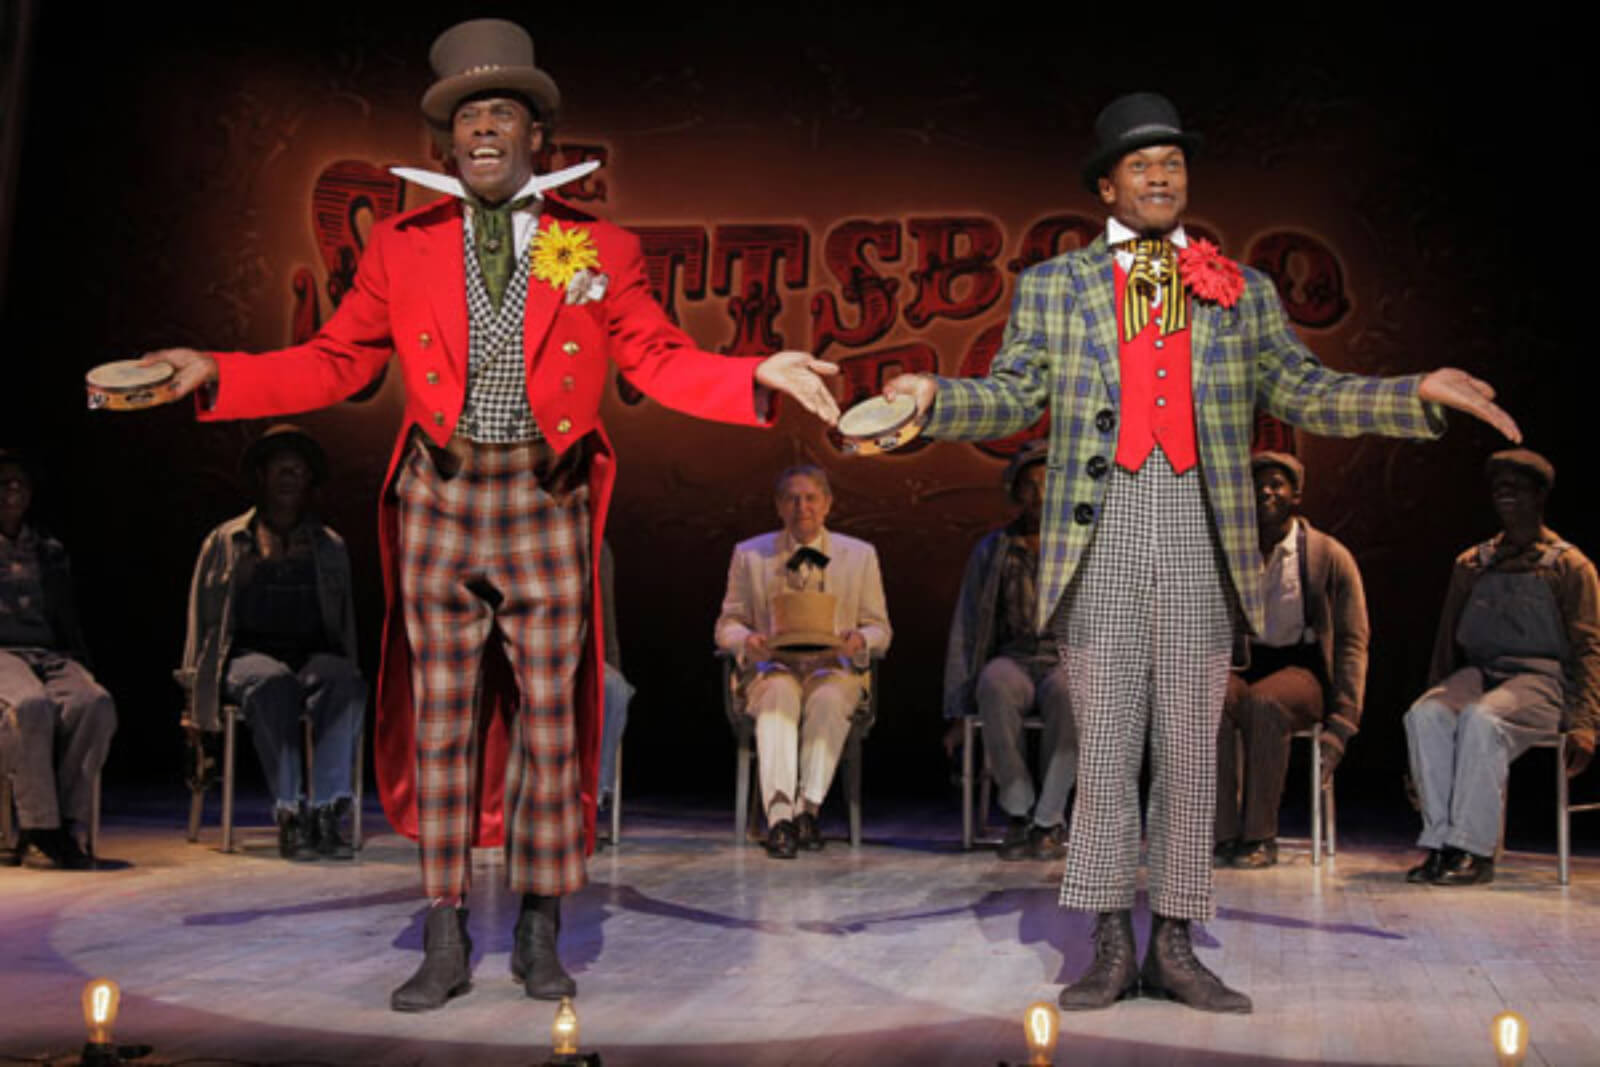 """Mr. Bones (Coleman Domingo) and Mr. Tambo (Forrest McClendon) singing """"Hey, Hey, Hey, Hey!"""" The title song in the show. They have tambourines in their hands and are wearing colorful costumes."""